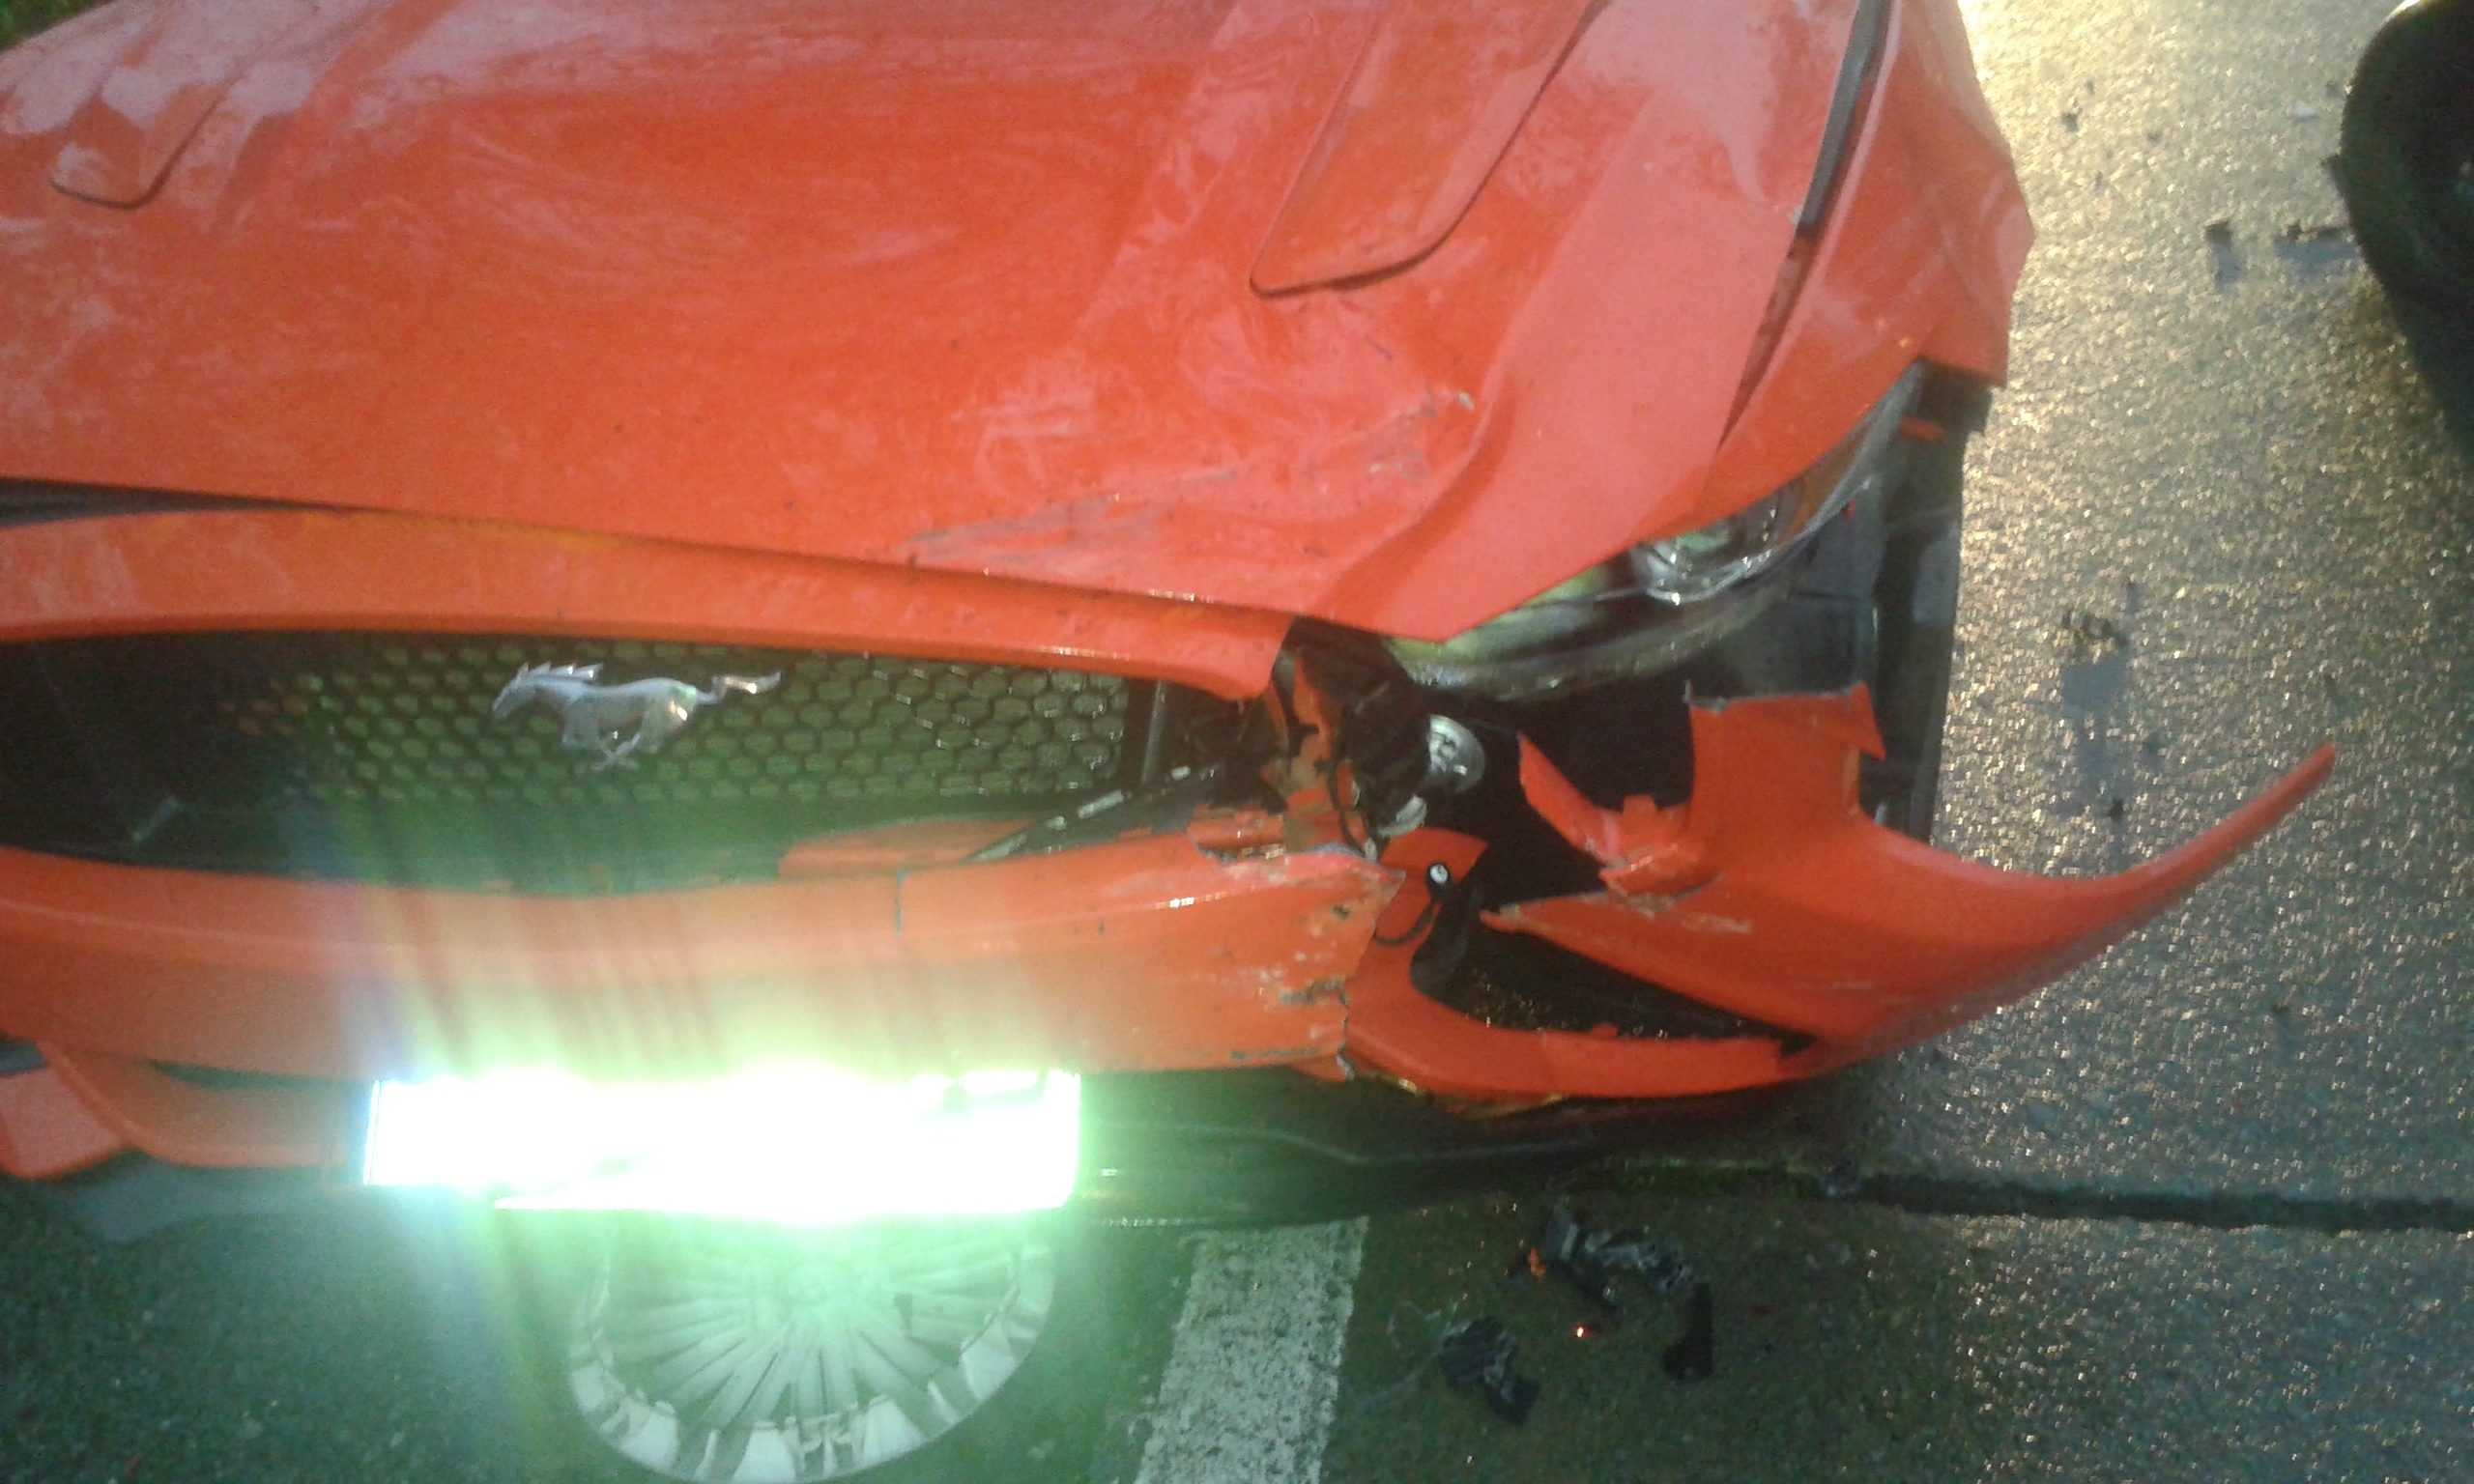 I Have A Lowmiles, Mint Condition (prior To This) 2015 Mustang Gt With  Minor Body Damage From A Lowspeed Impact With No Mechanical Involvement To  The